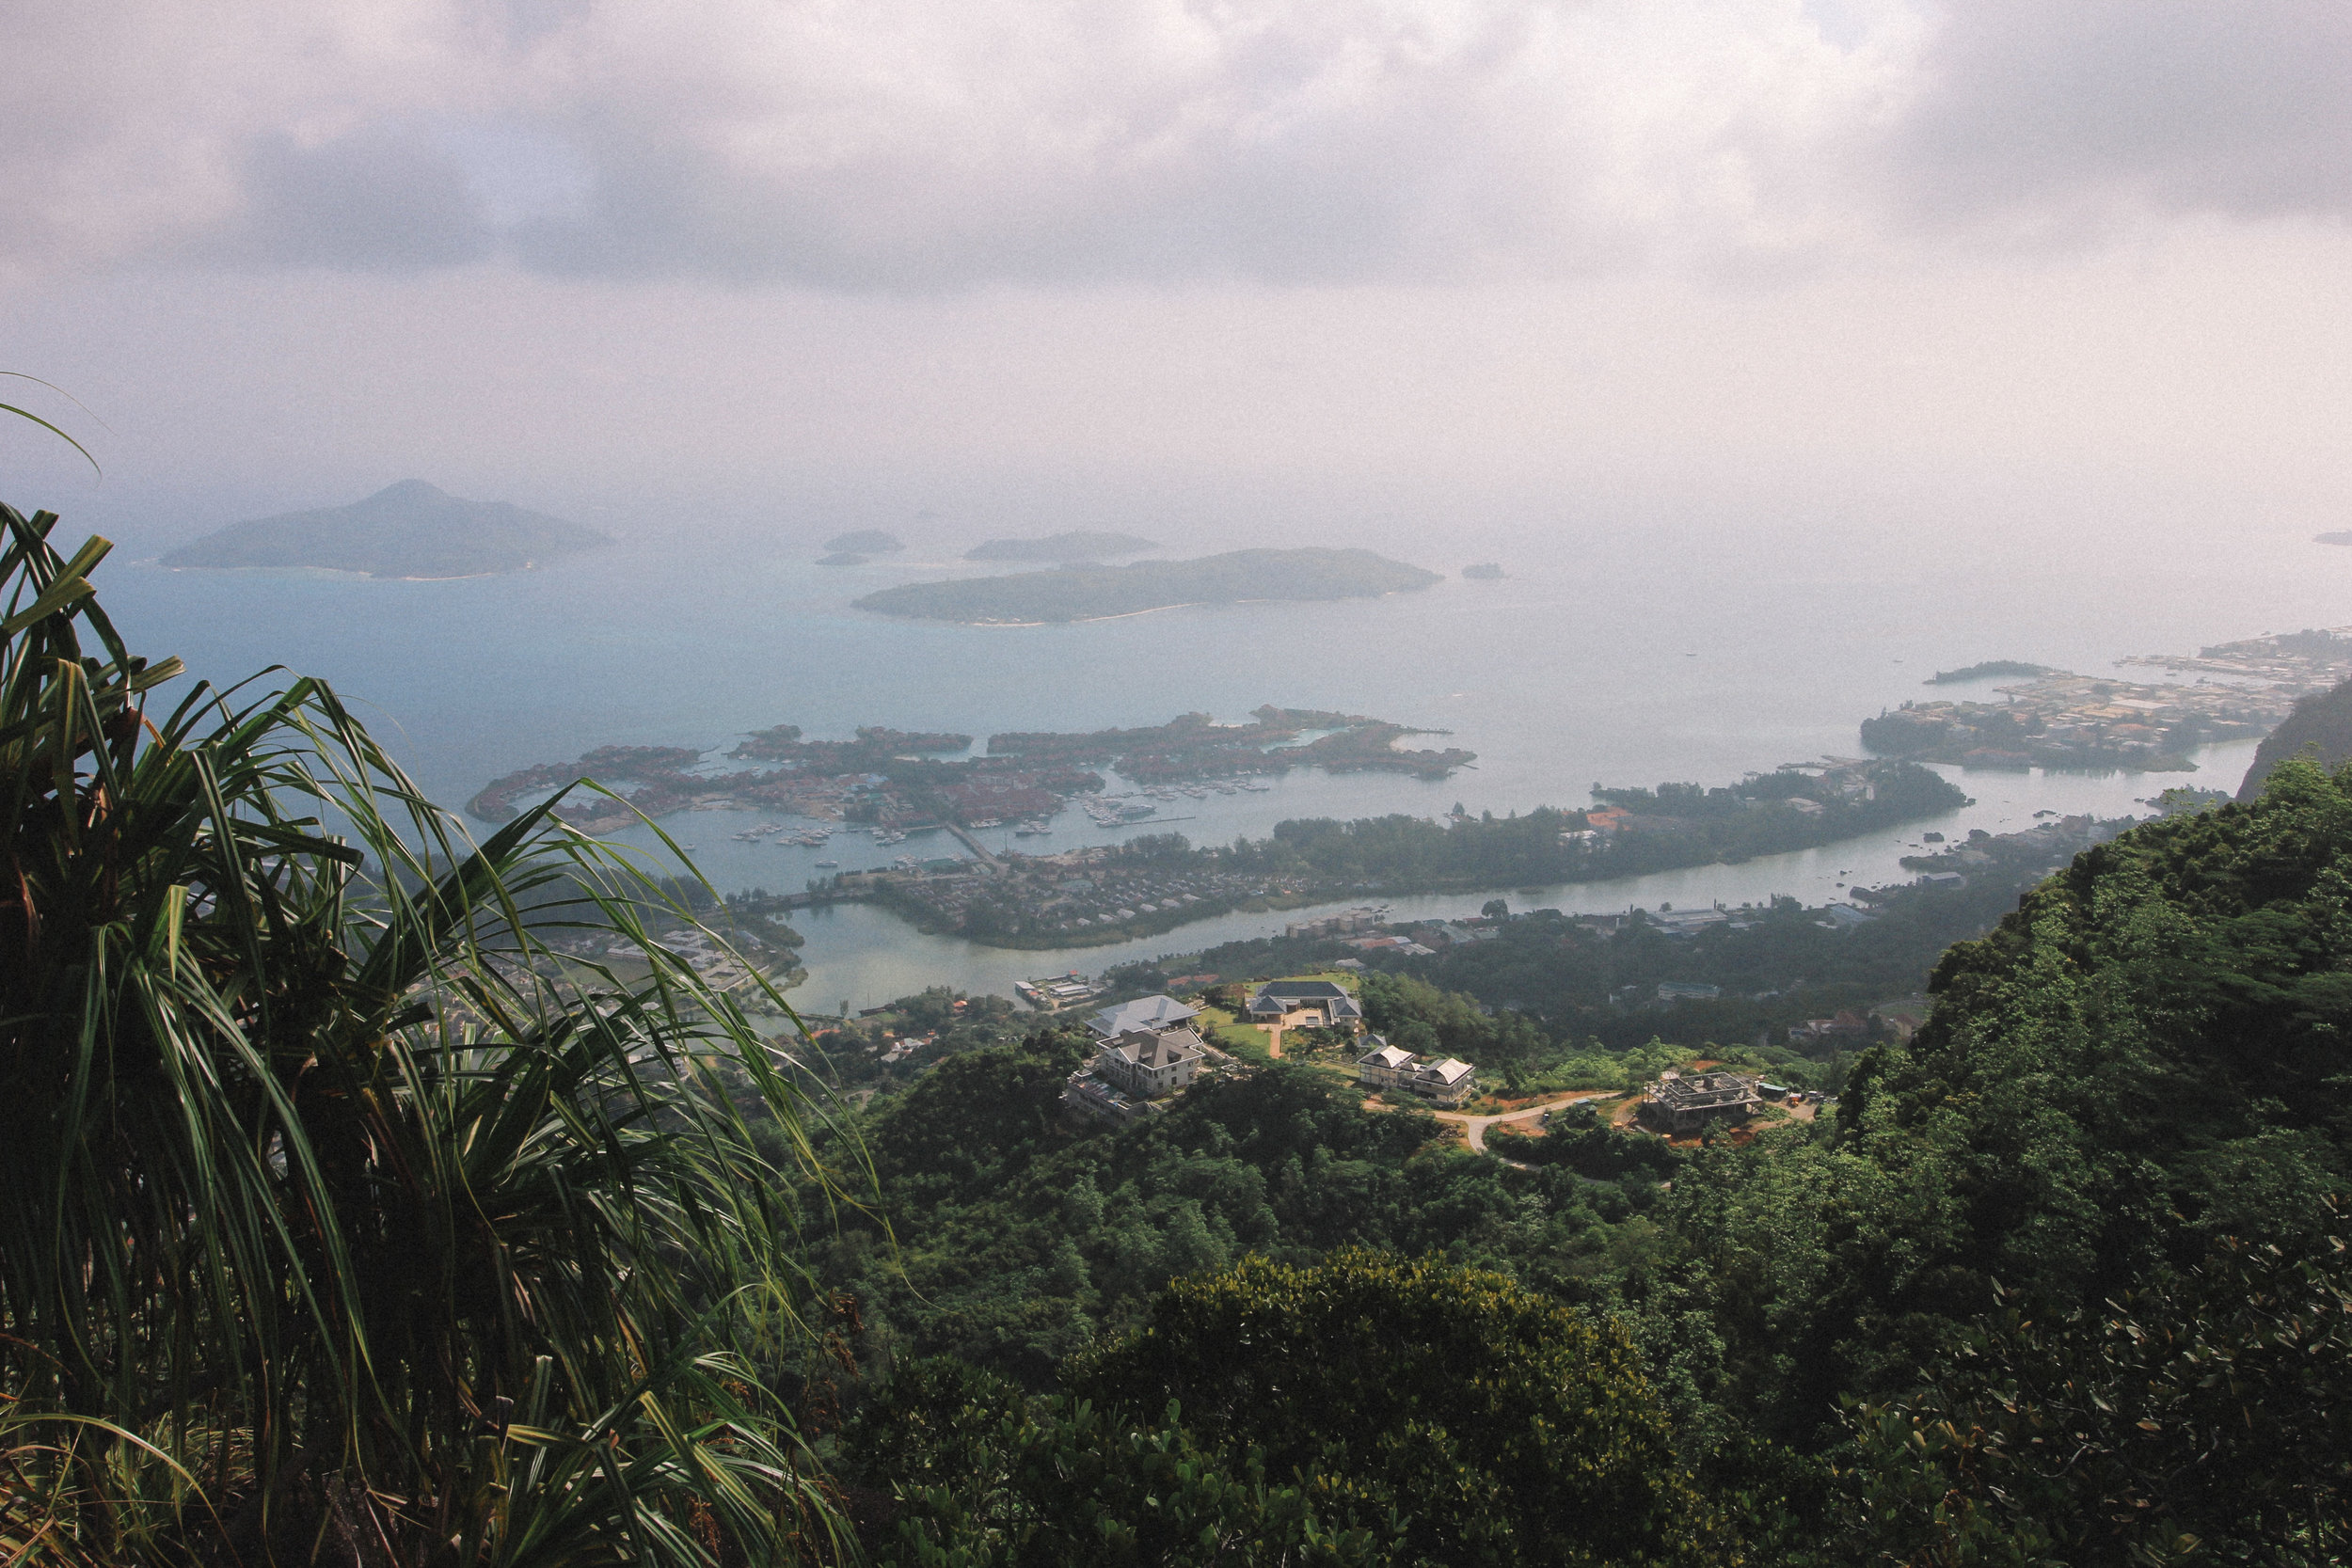 The view from the top of Copalia Trail, Mahe, Seychelles